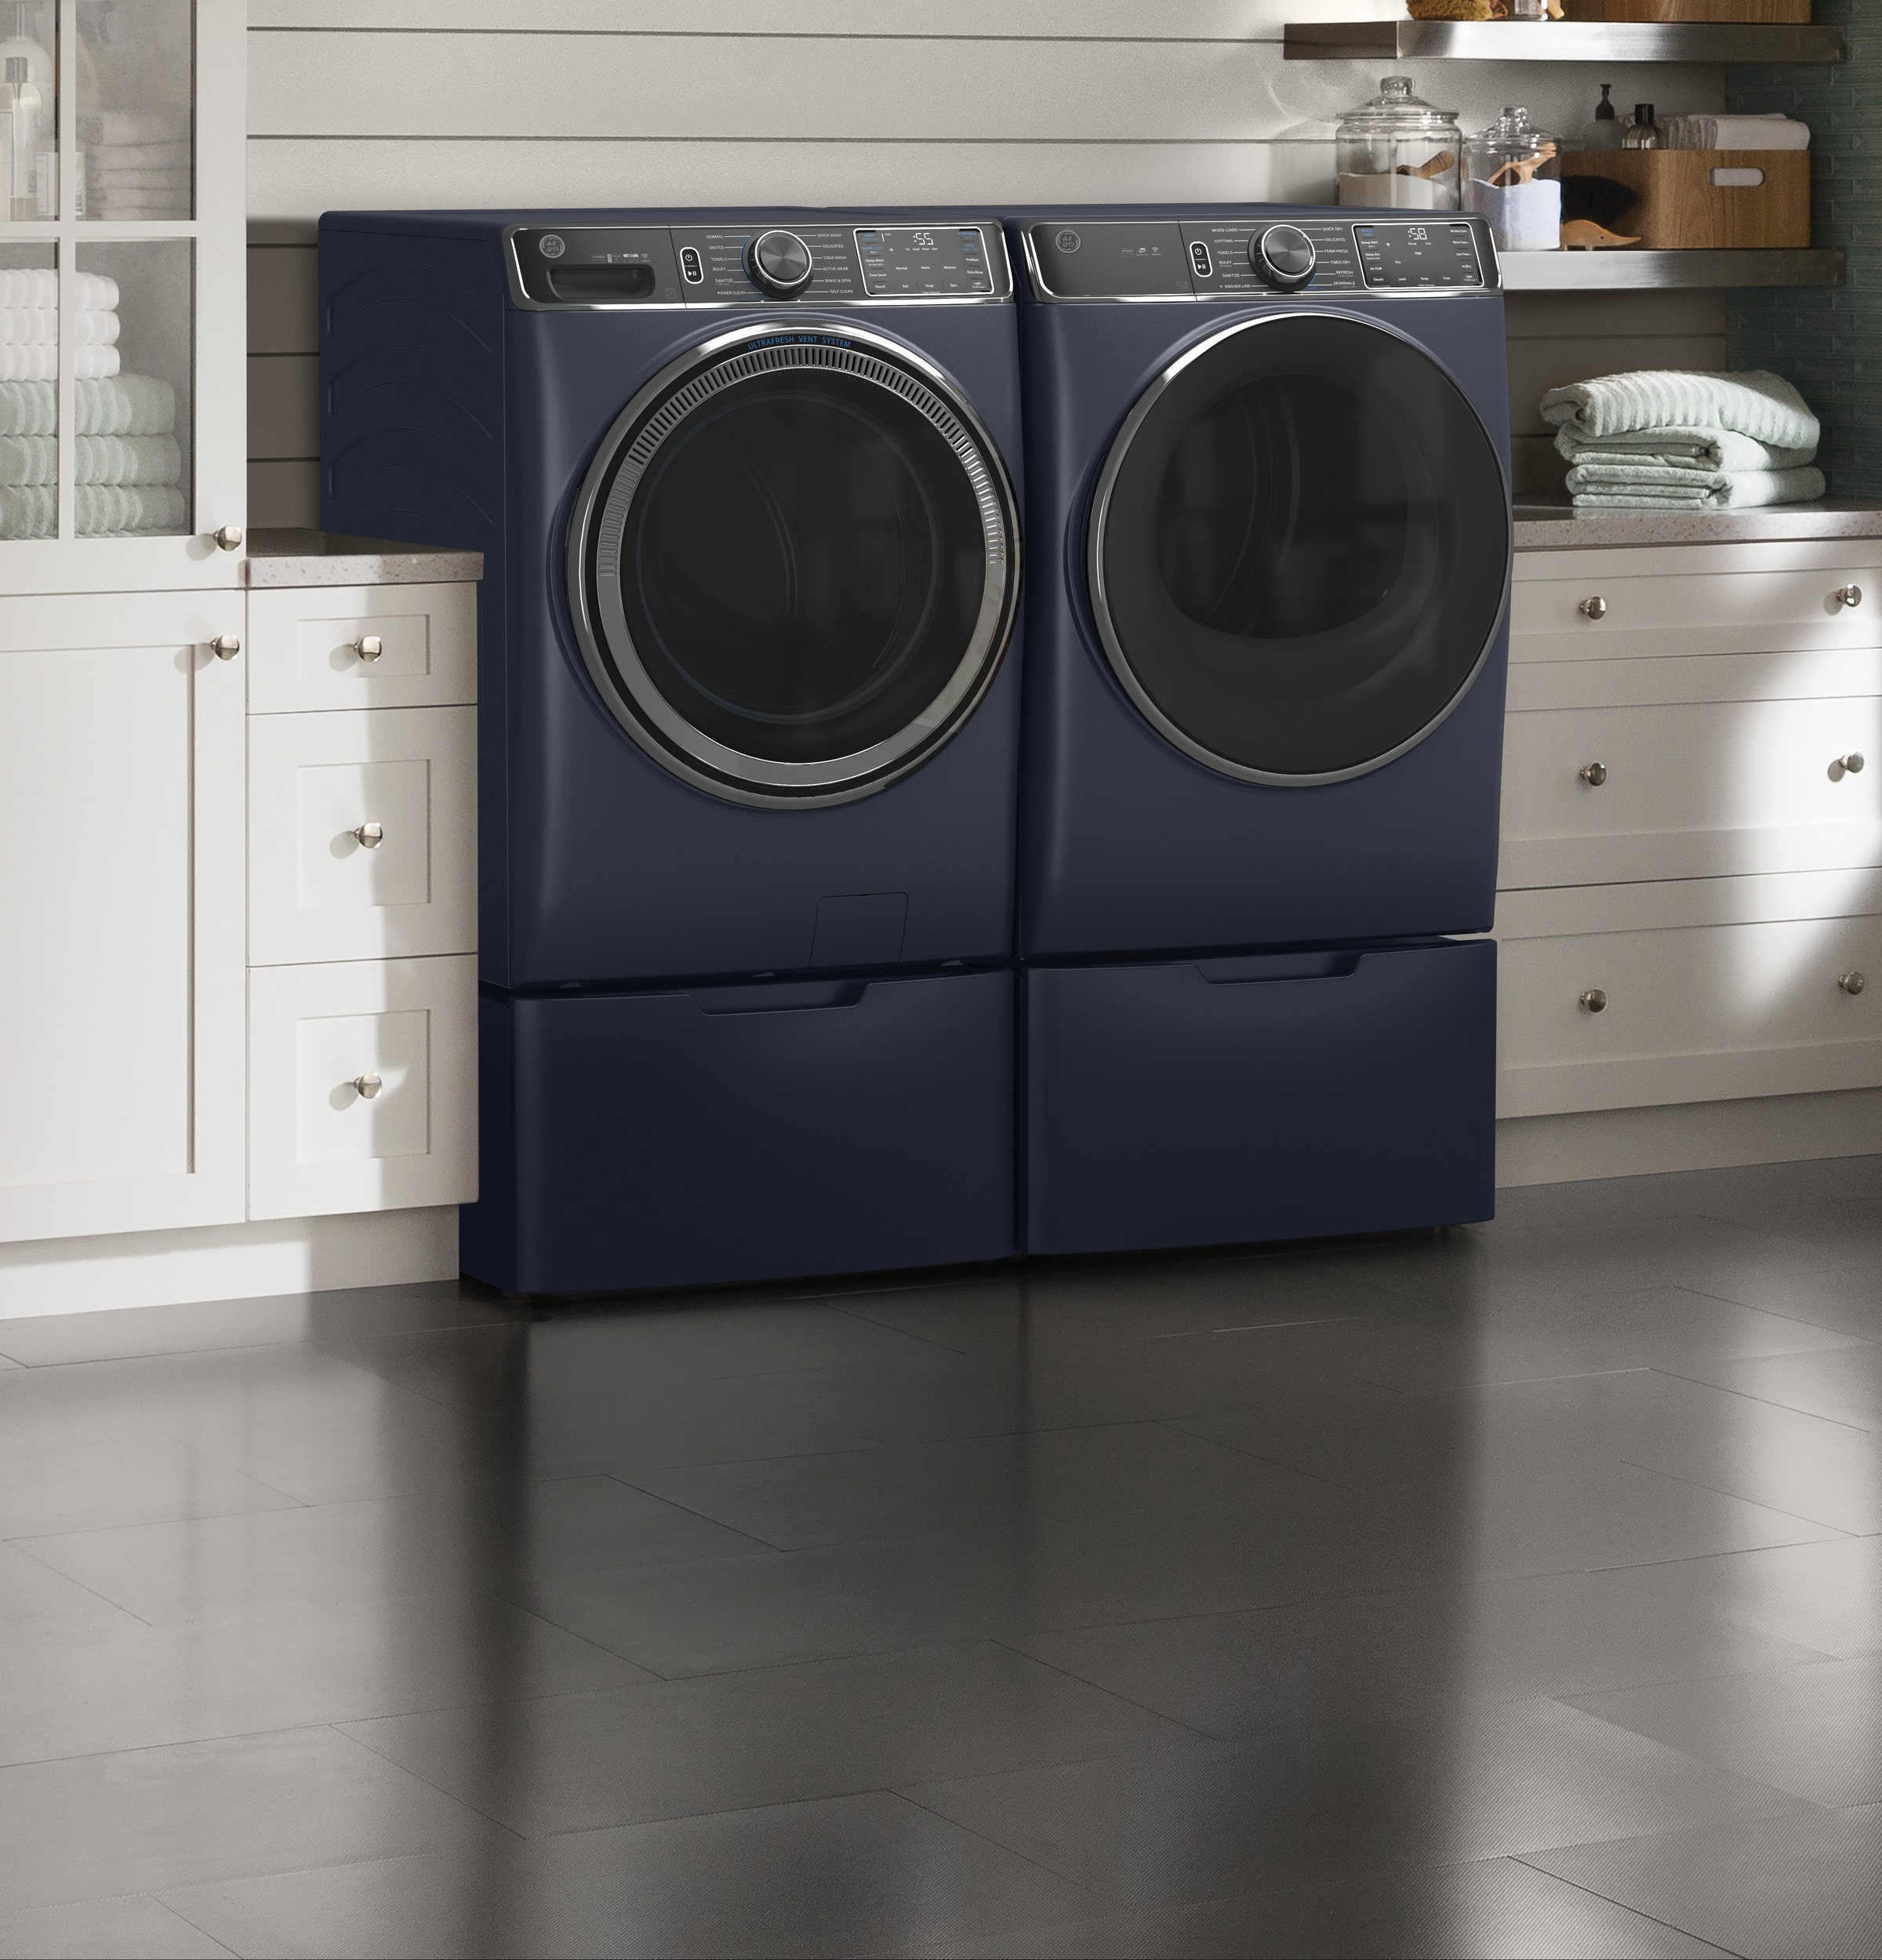 Model: GFD85ESPNRS   GE GE® 7.8 cu. ft. Capacity Smart Front Load Electric Dryer with Steam and Sanitize Cycle